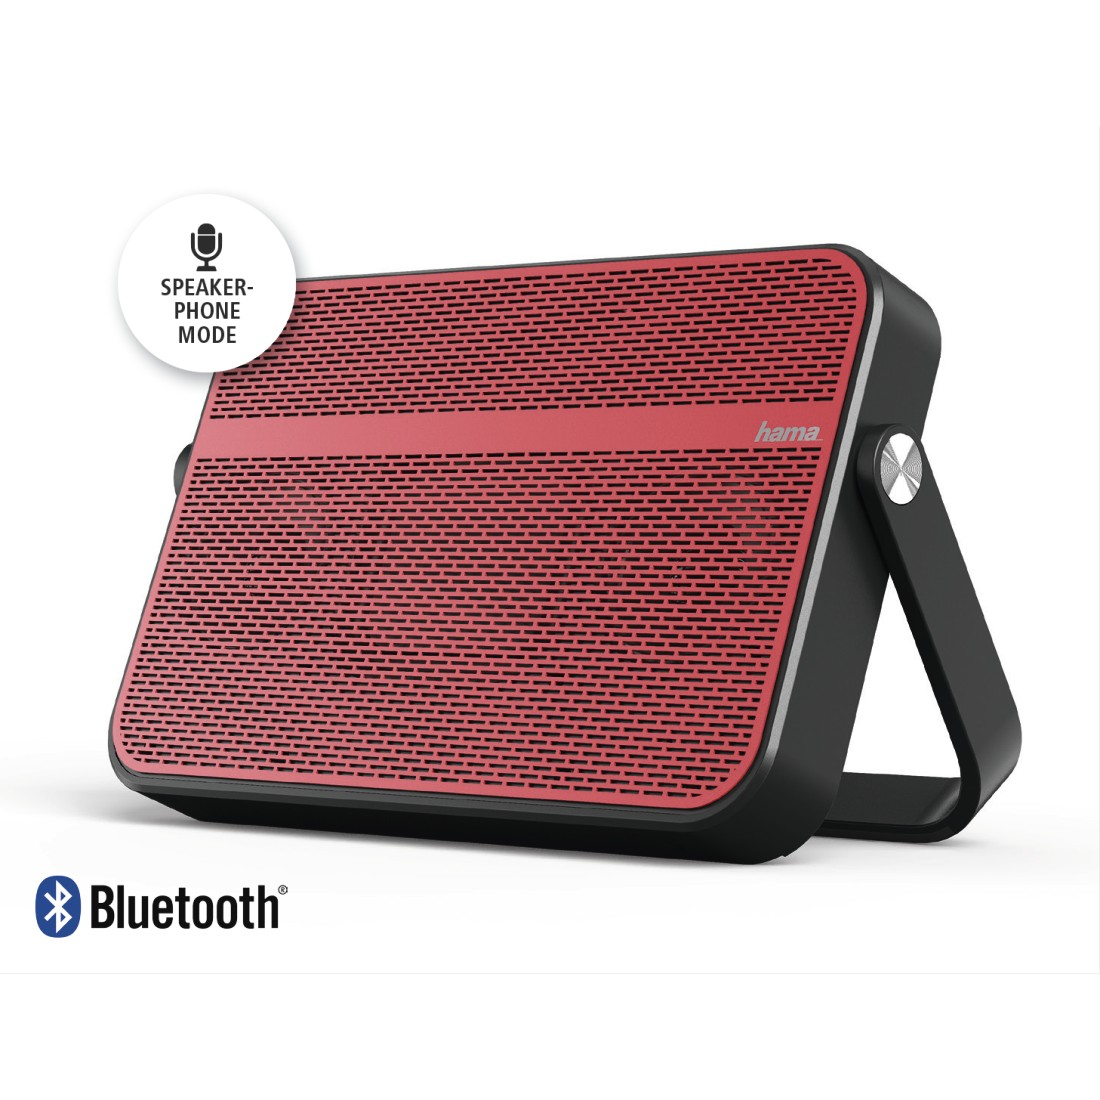 abx4 High-Res Image4 - Hama, Blade Mobile Bluetooth Speaker, red/black